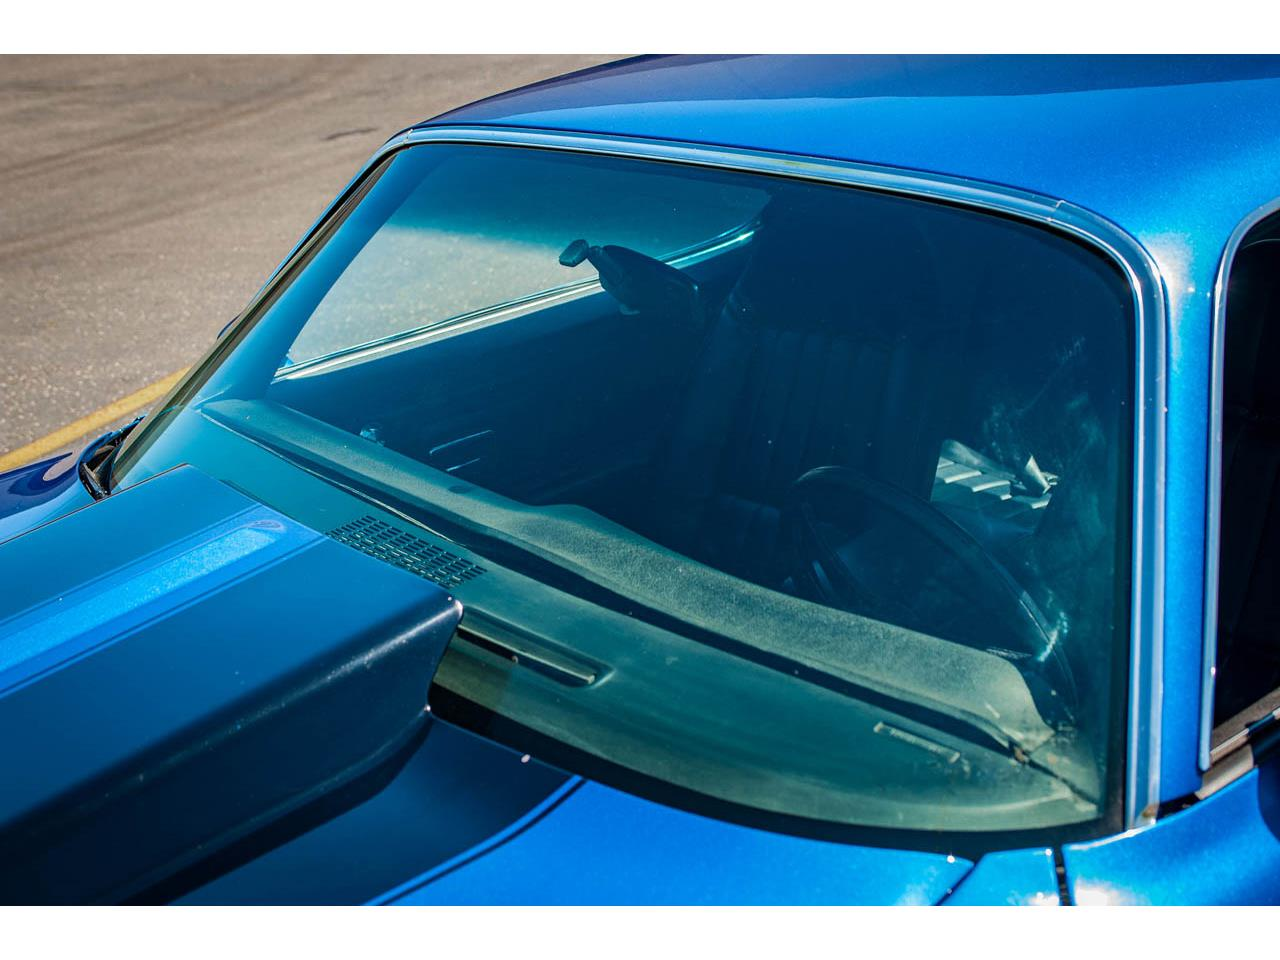 Large Picture of Classic 1971 Chevrolet Camaro located in Illinois - $35,995.00 Offered by Gateway Classic Cars - St. Louis - QB8S